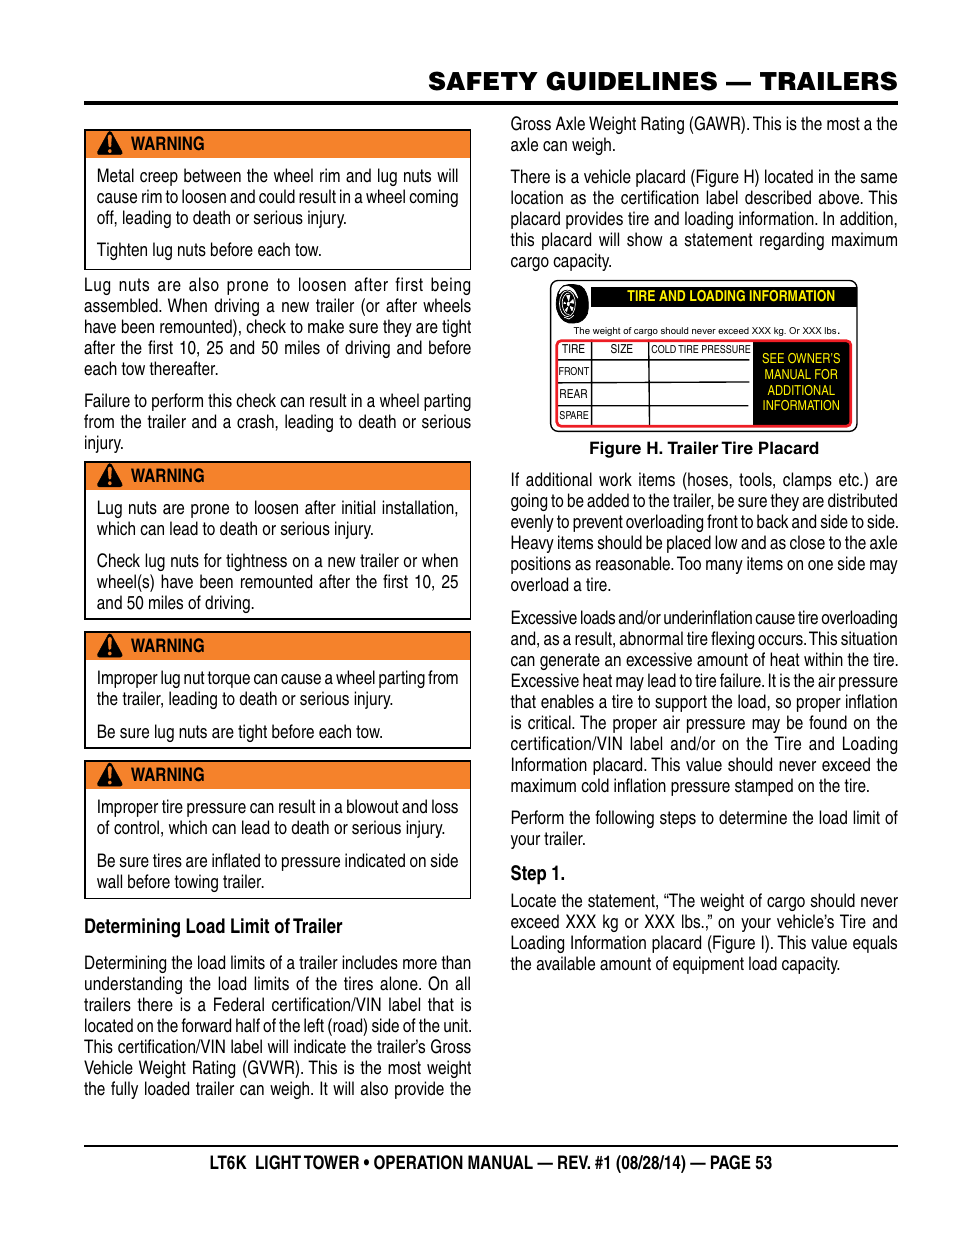 Safety guidelines — trailers | Multiquip LT6K User Manual